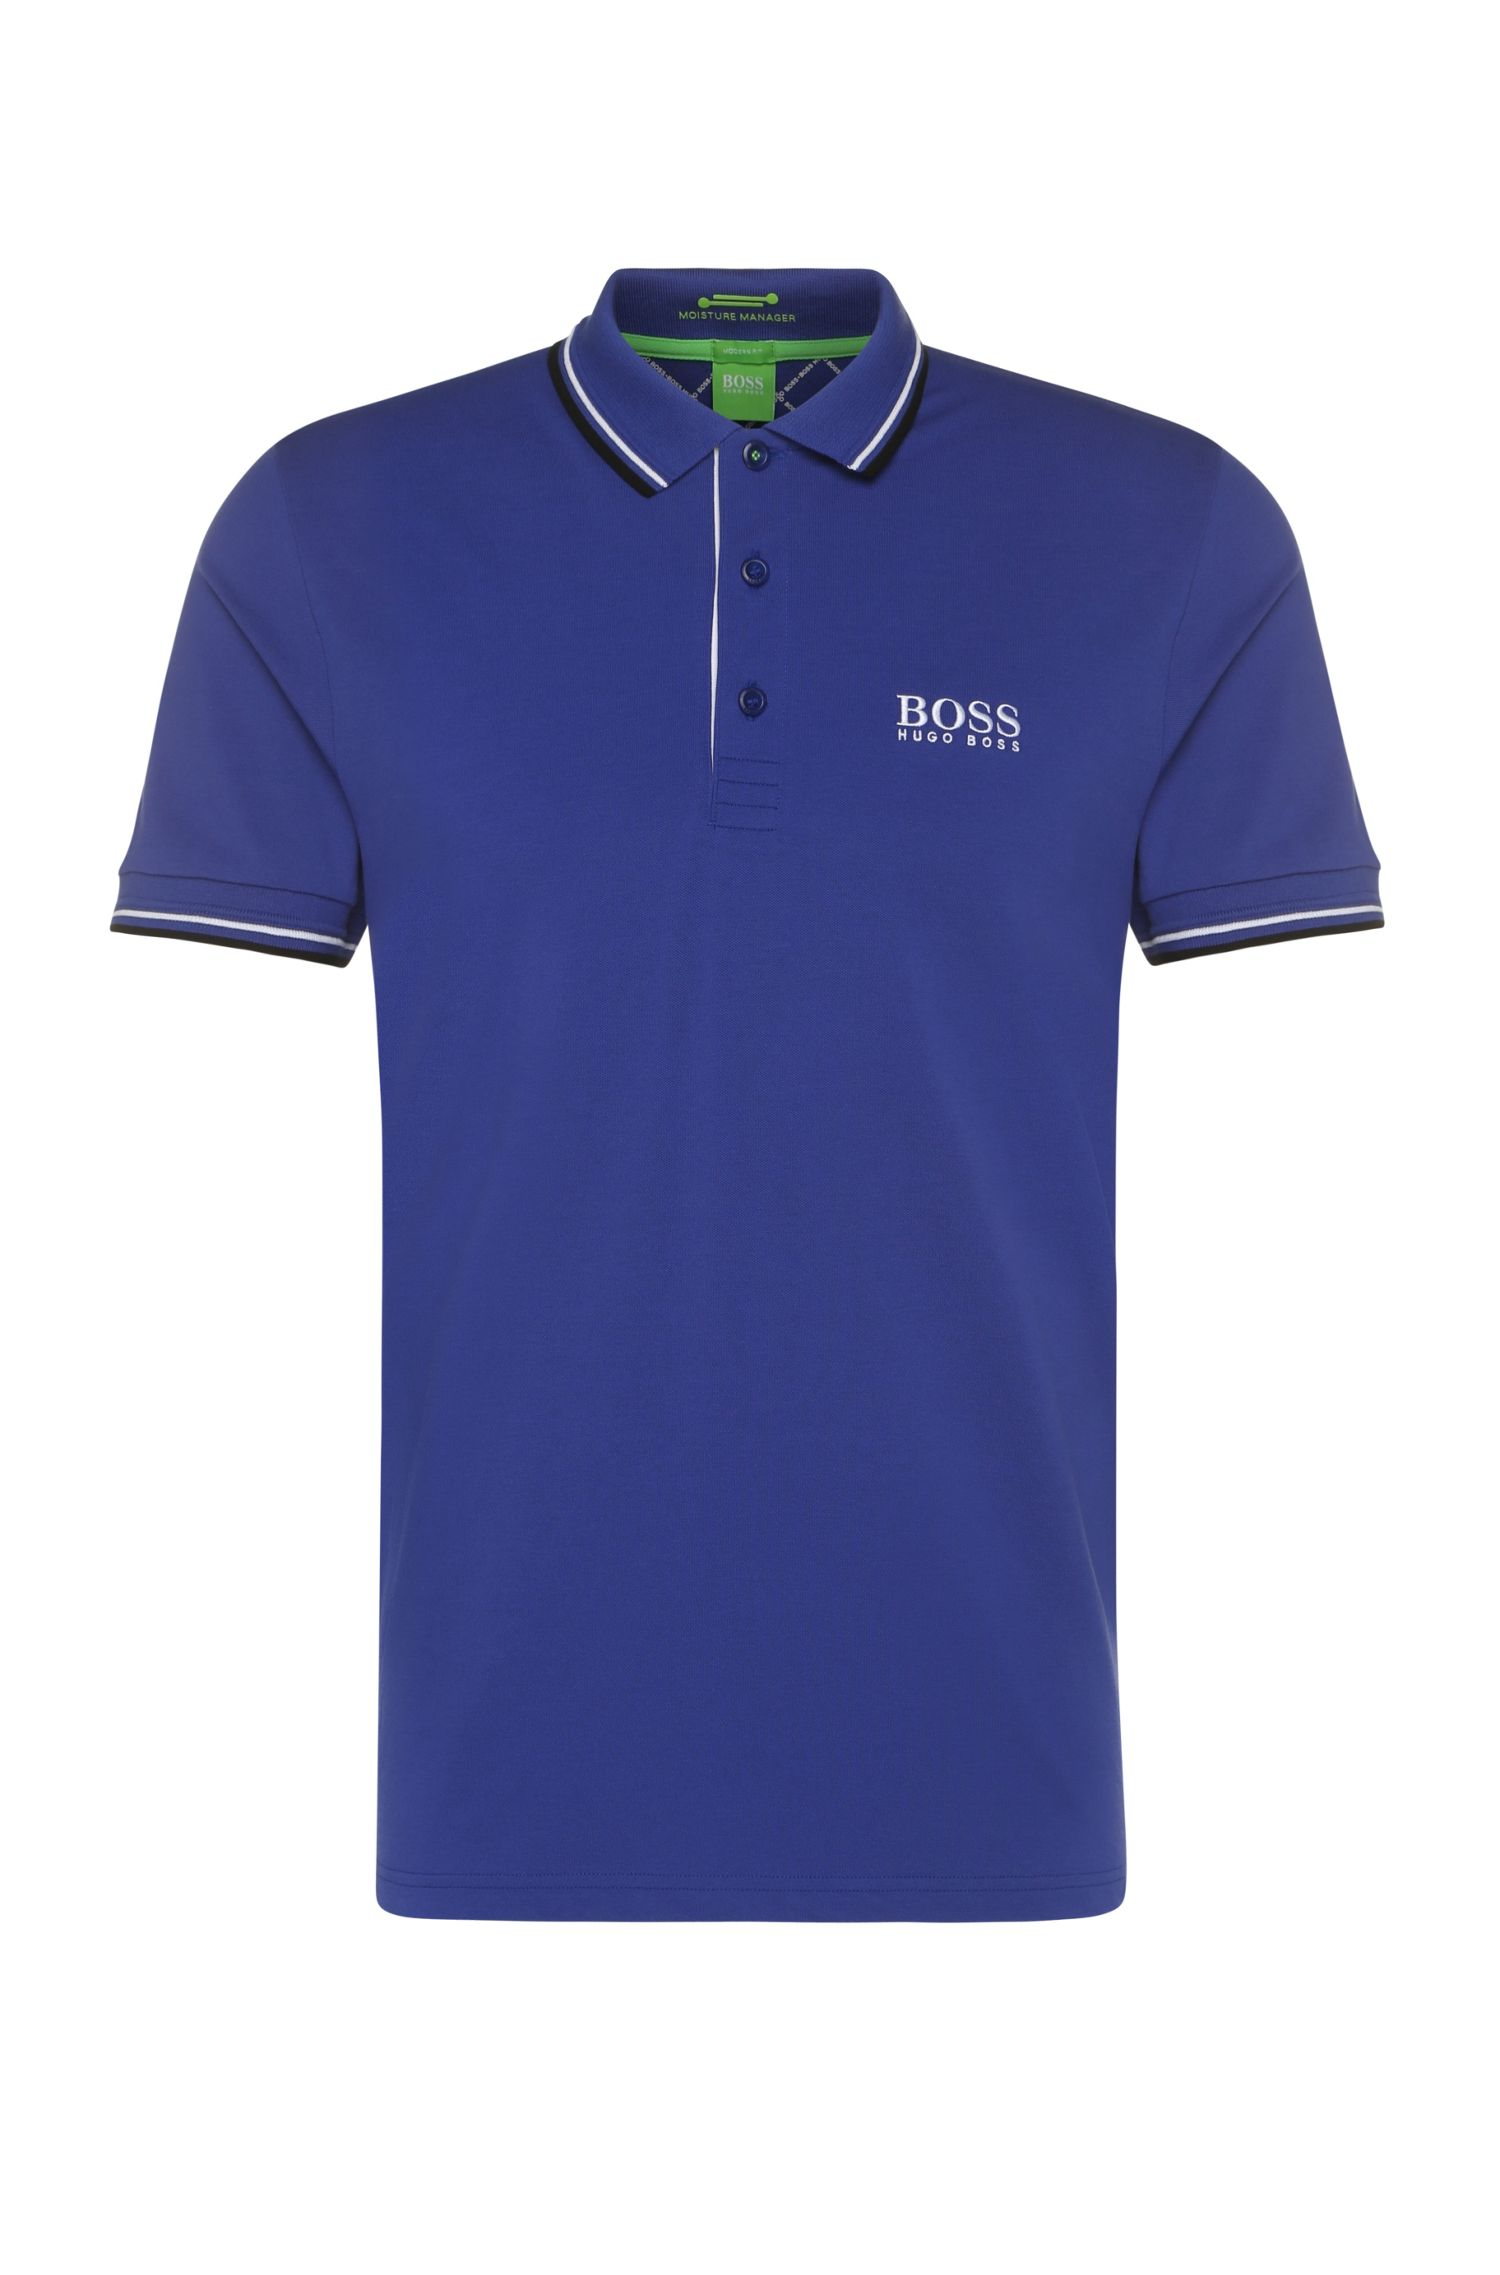 'Paddy Pro' | Modern Fit, Moisture Manager Stretch Cotton Blend Polo Shirt